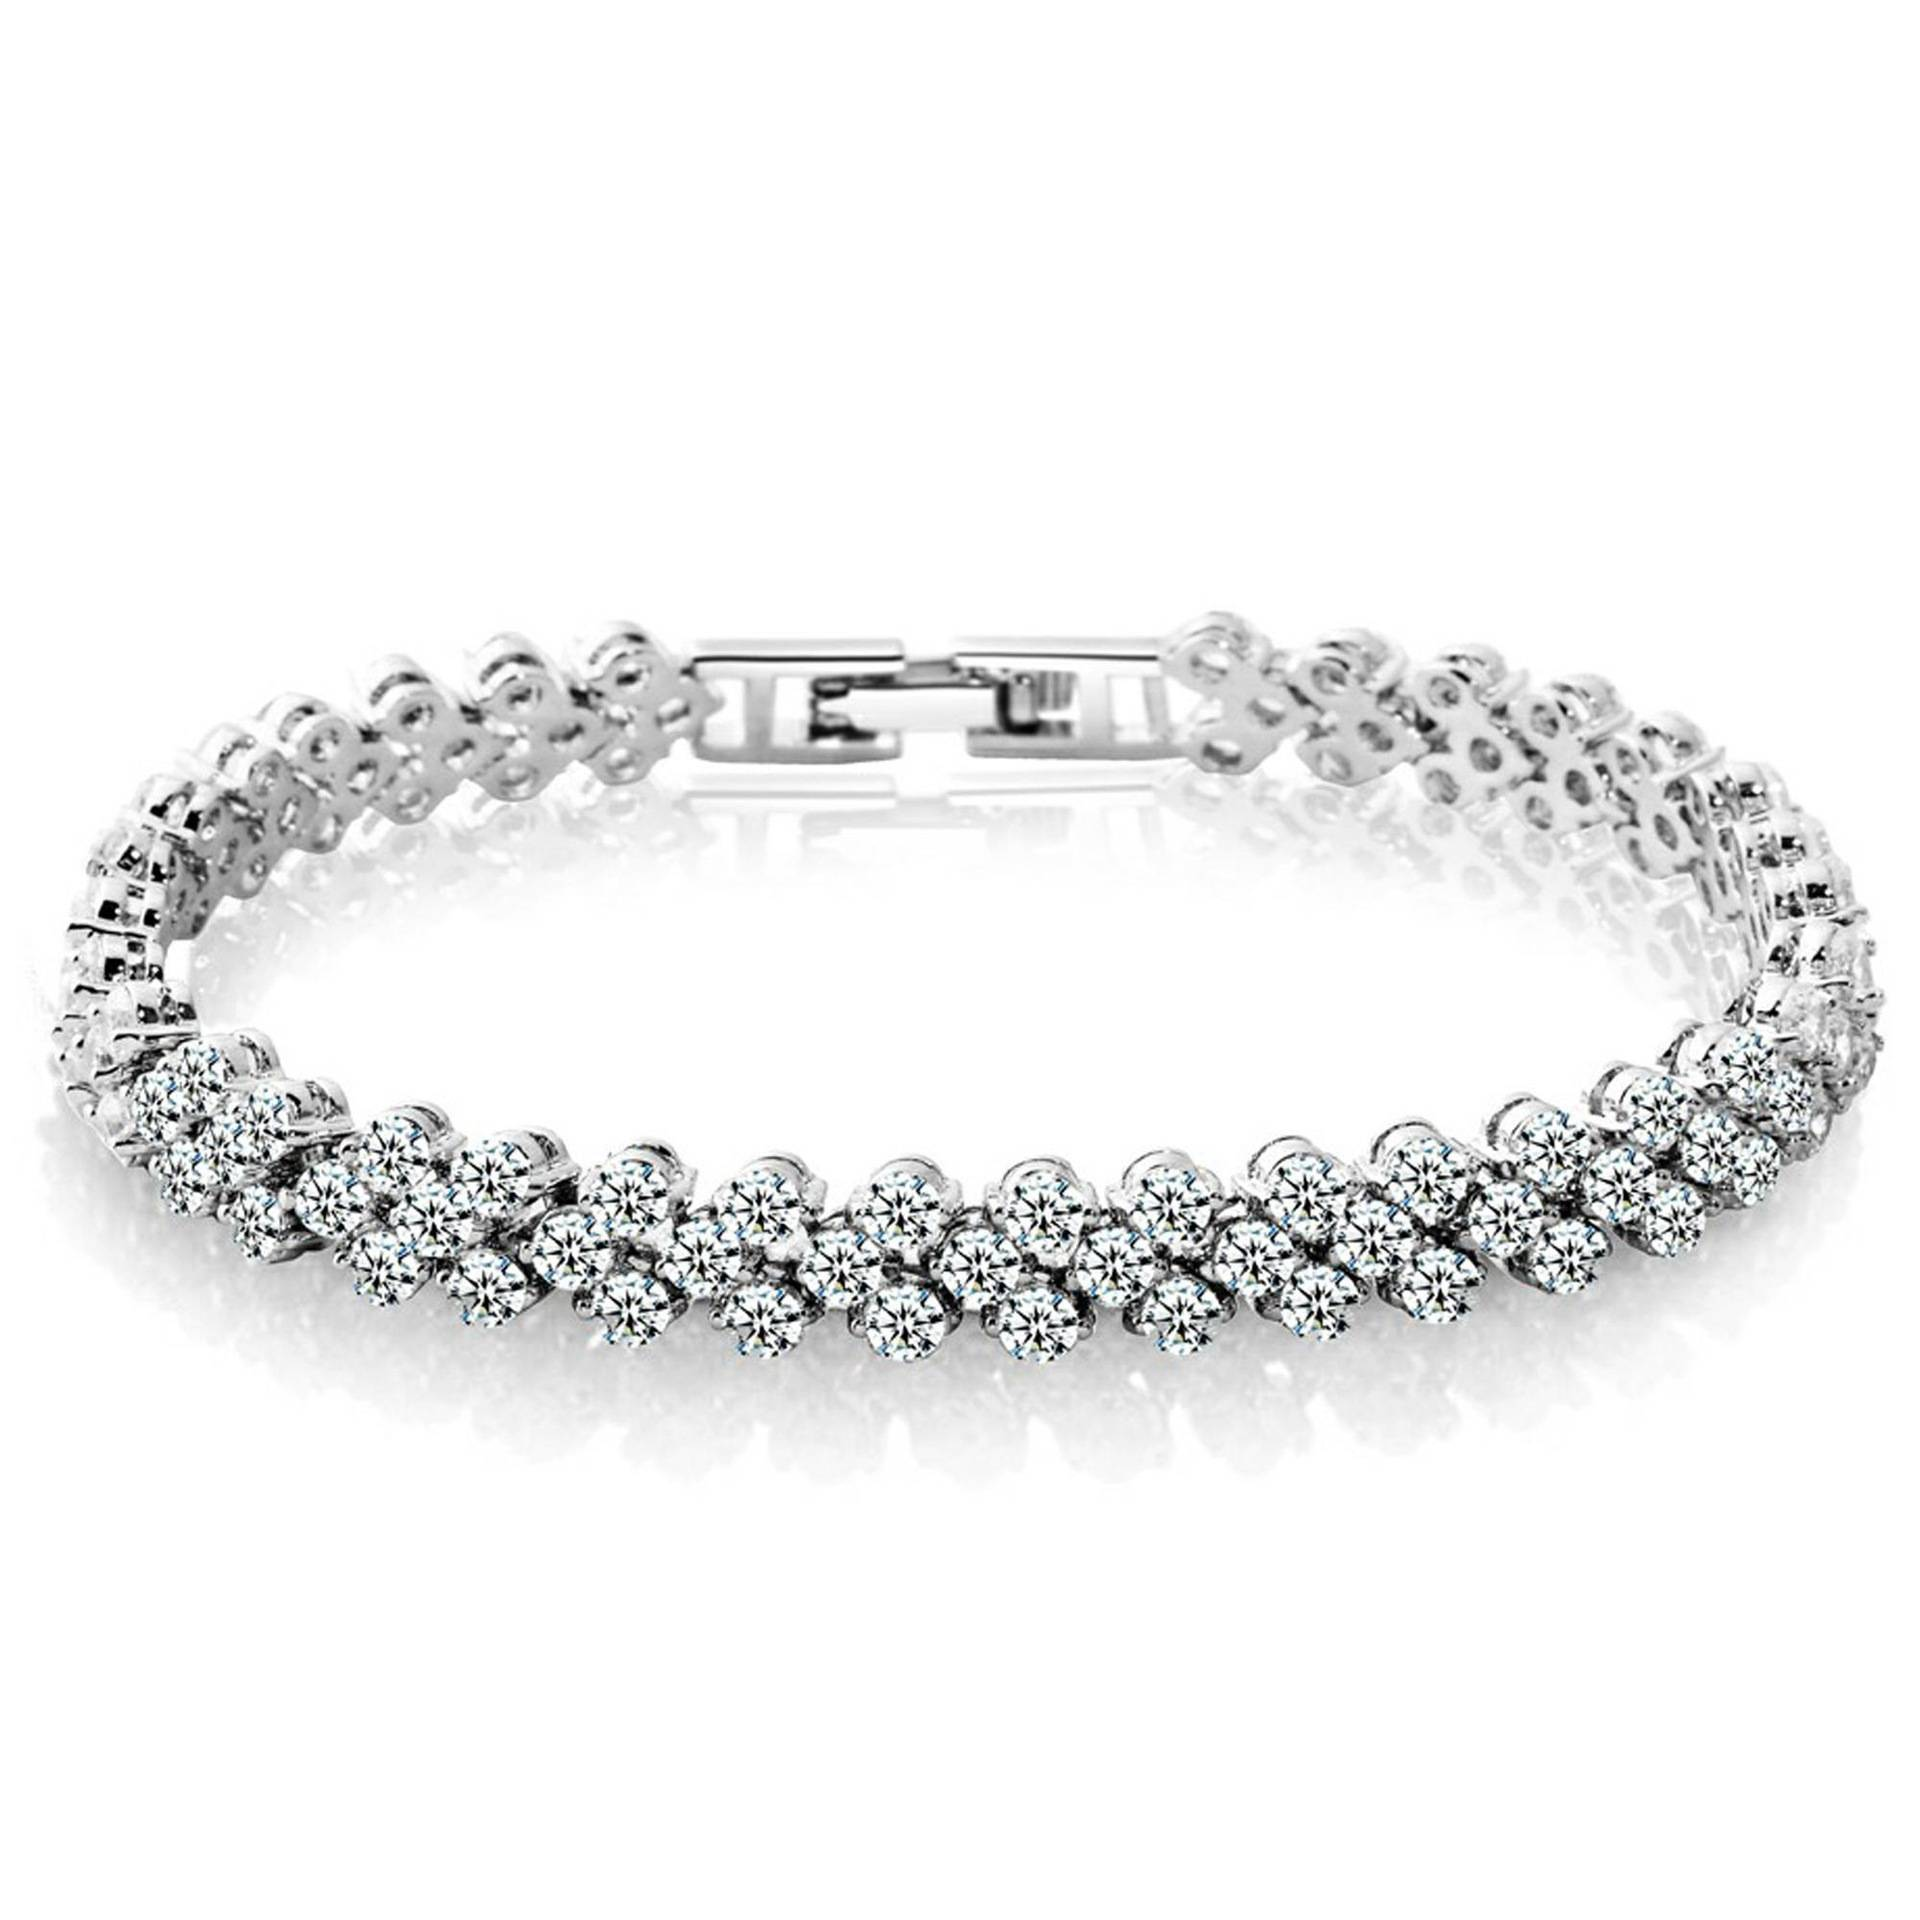 Fashion Women Silver Zircon Bracelet Bangle